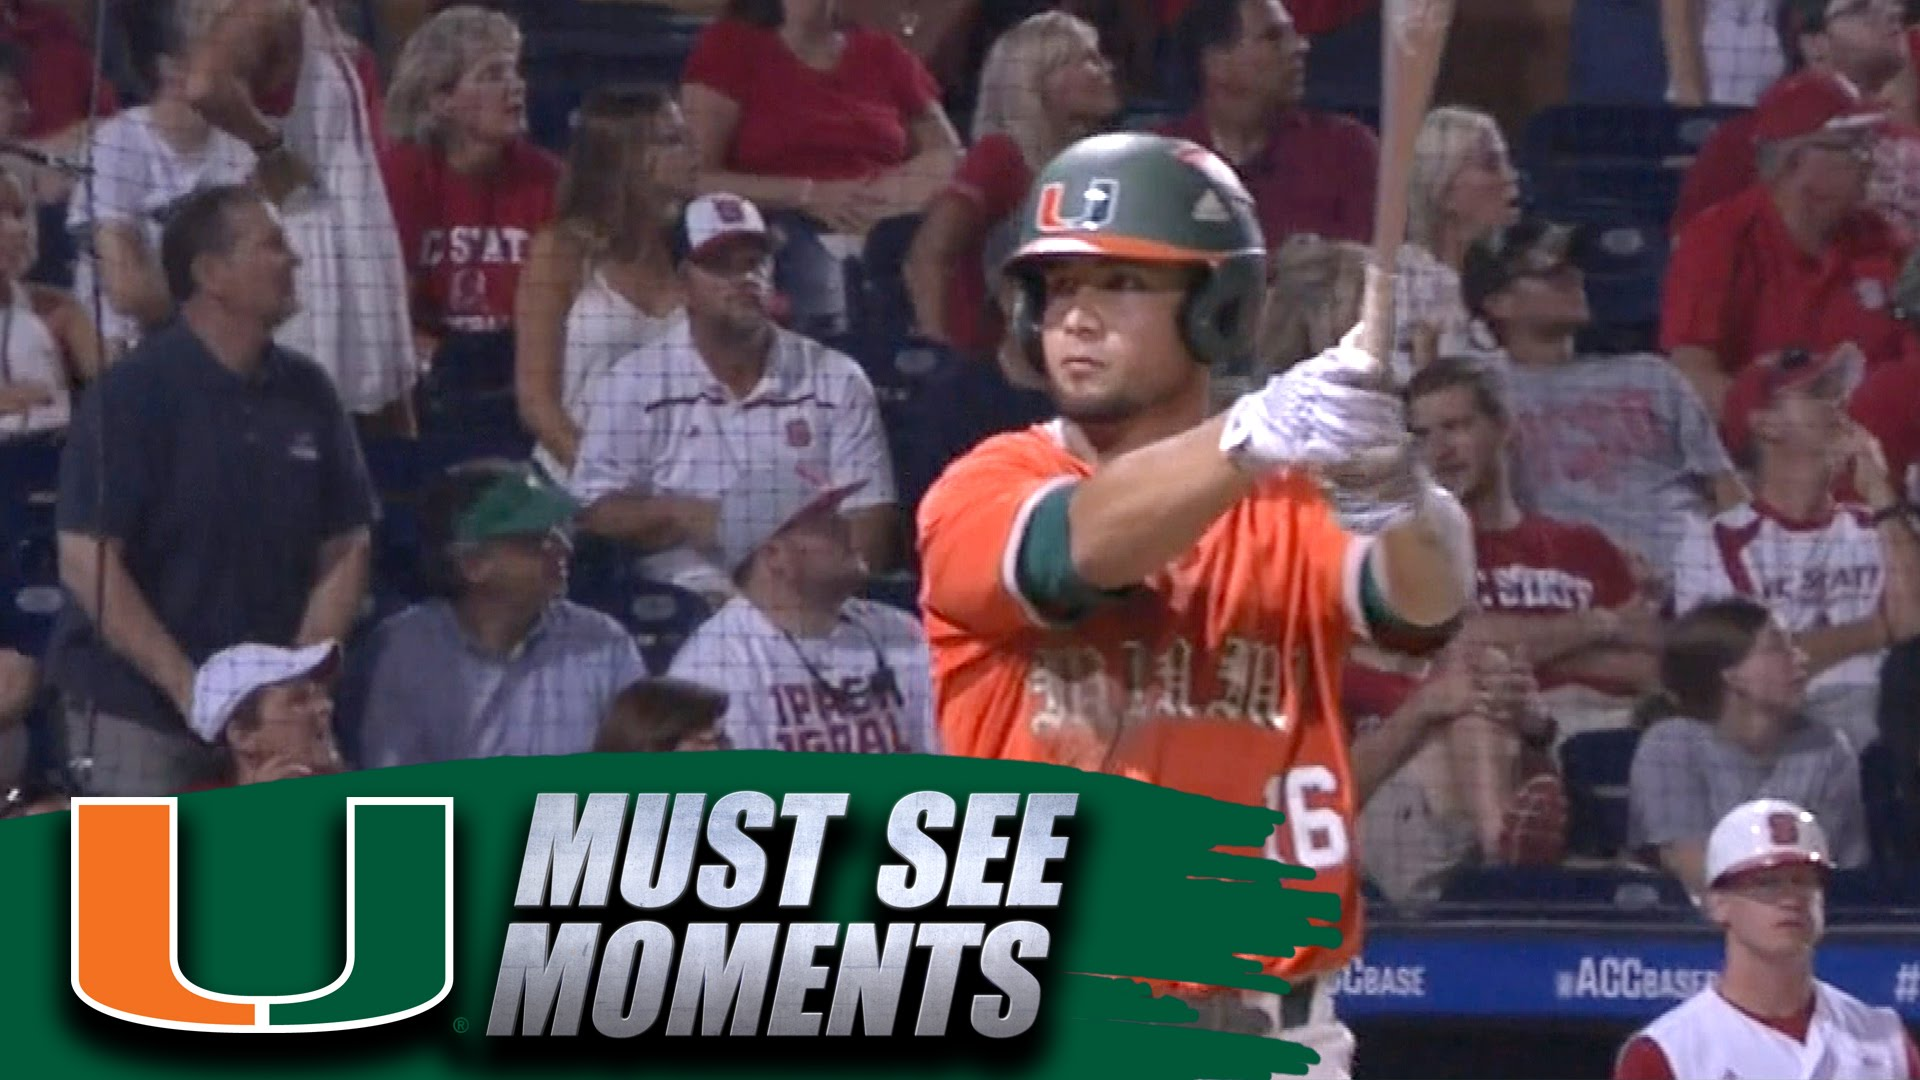 Miami Hurricanes player pimps the hell out of his game winning homer